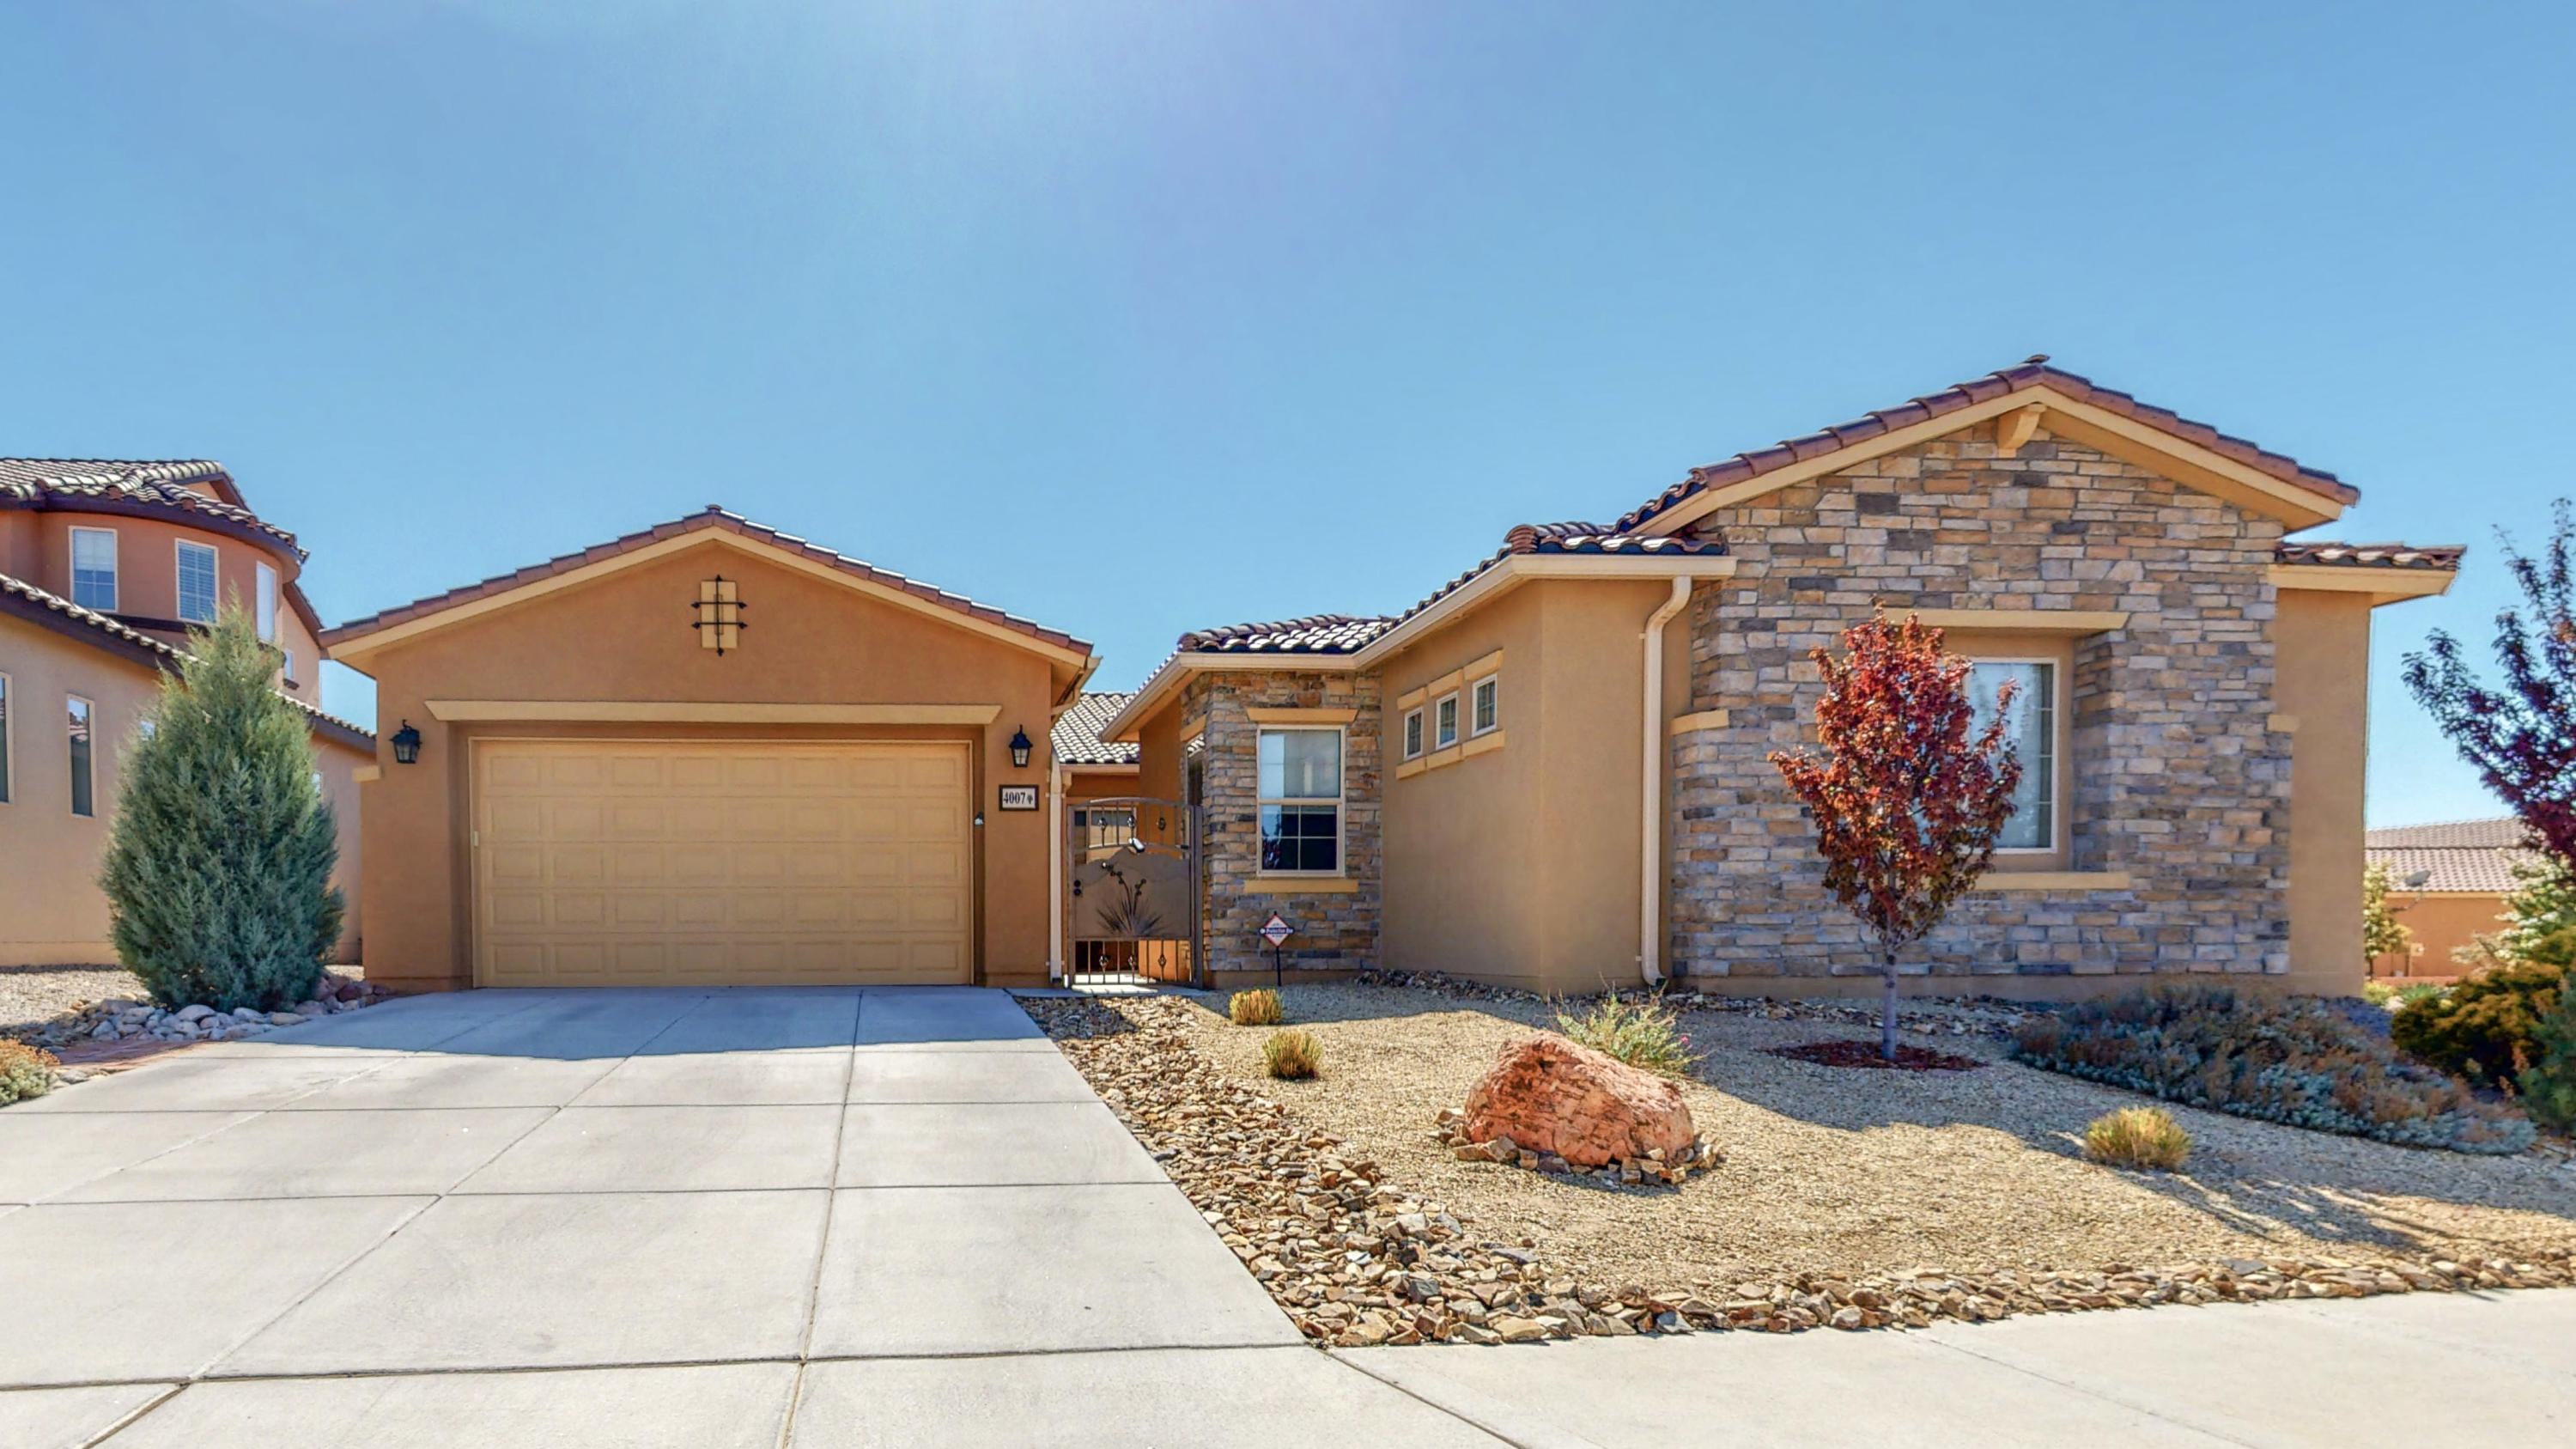 4007 PLAZA COLINA Lane, Rio Rancho NM 87124